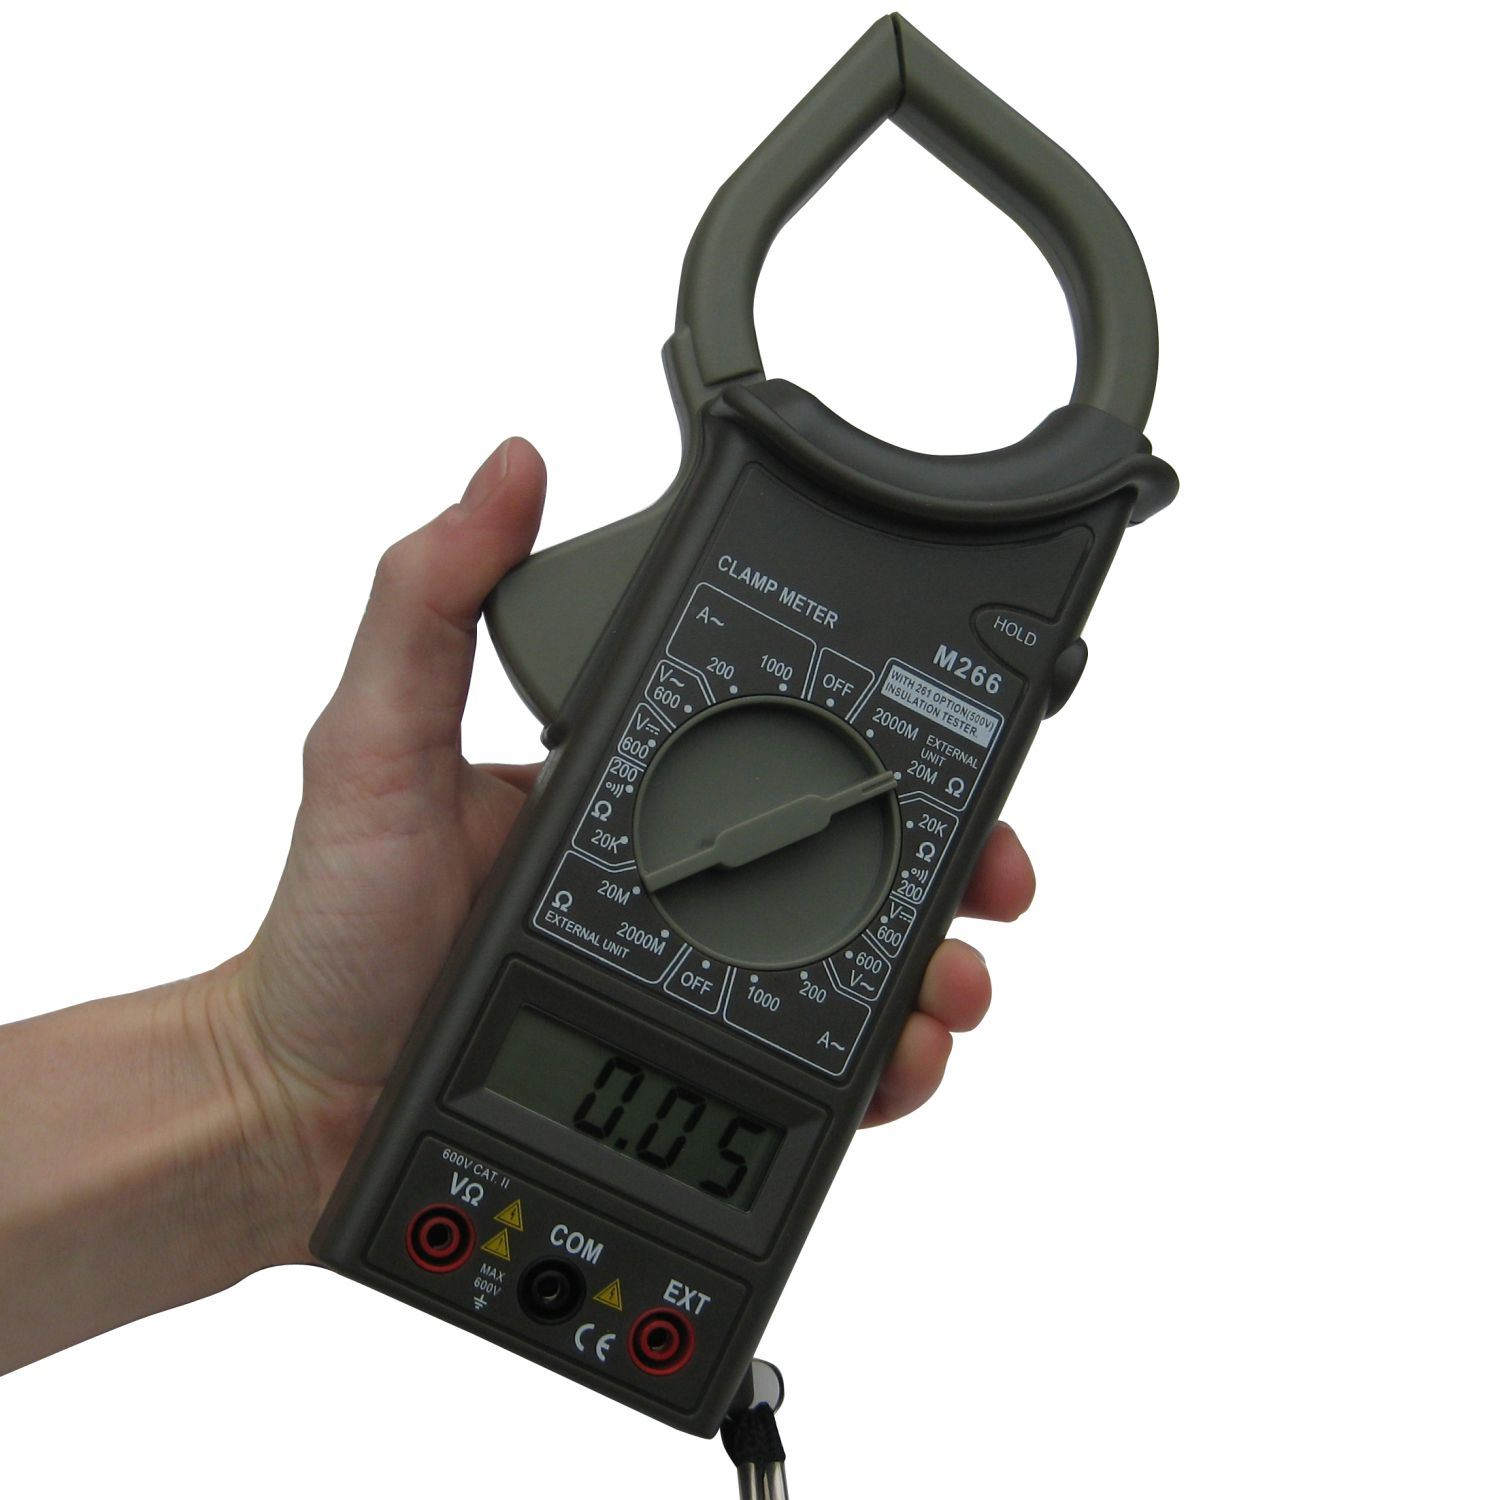 Auto Meter Clamp : Digital clamp meter hvac auto m